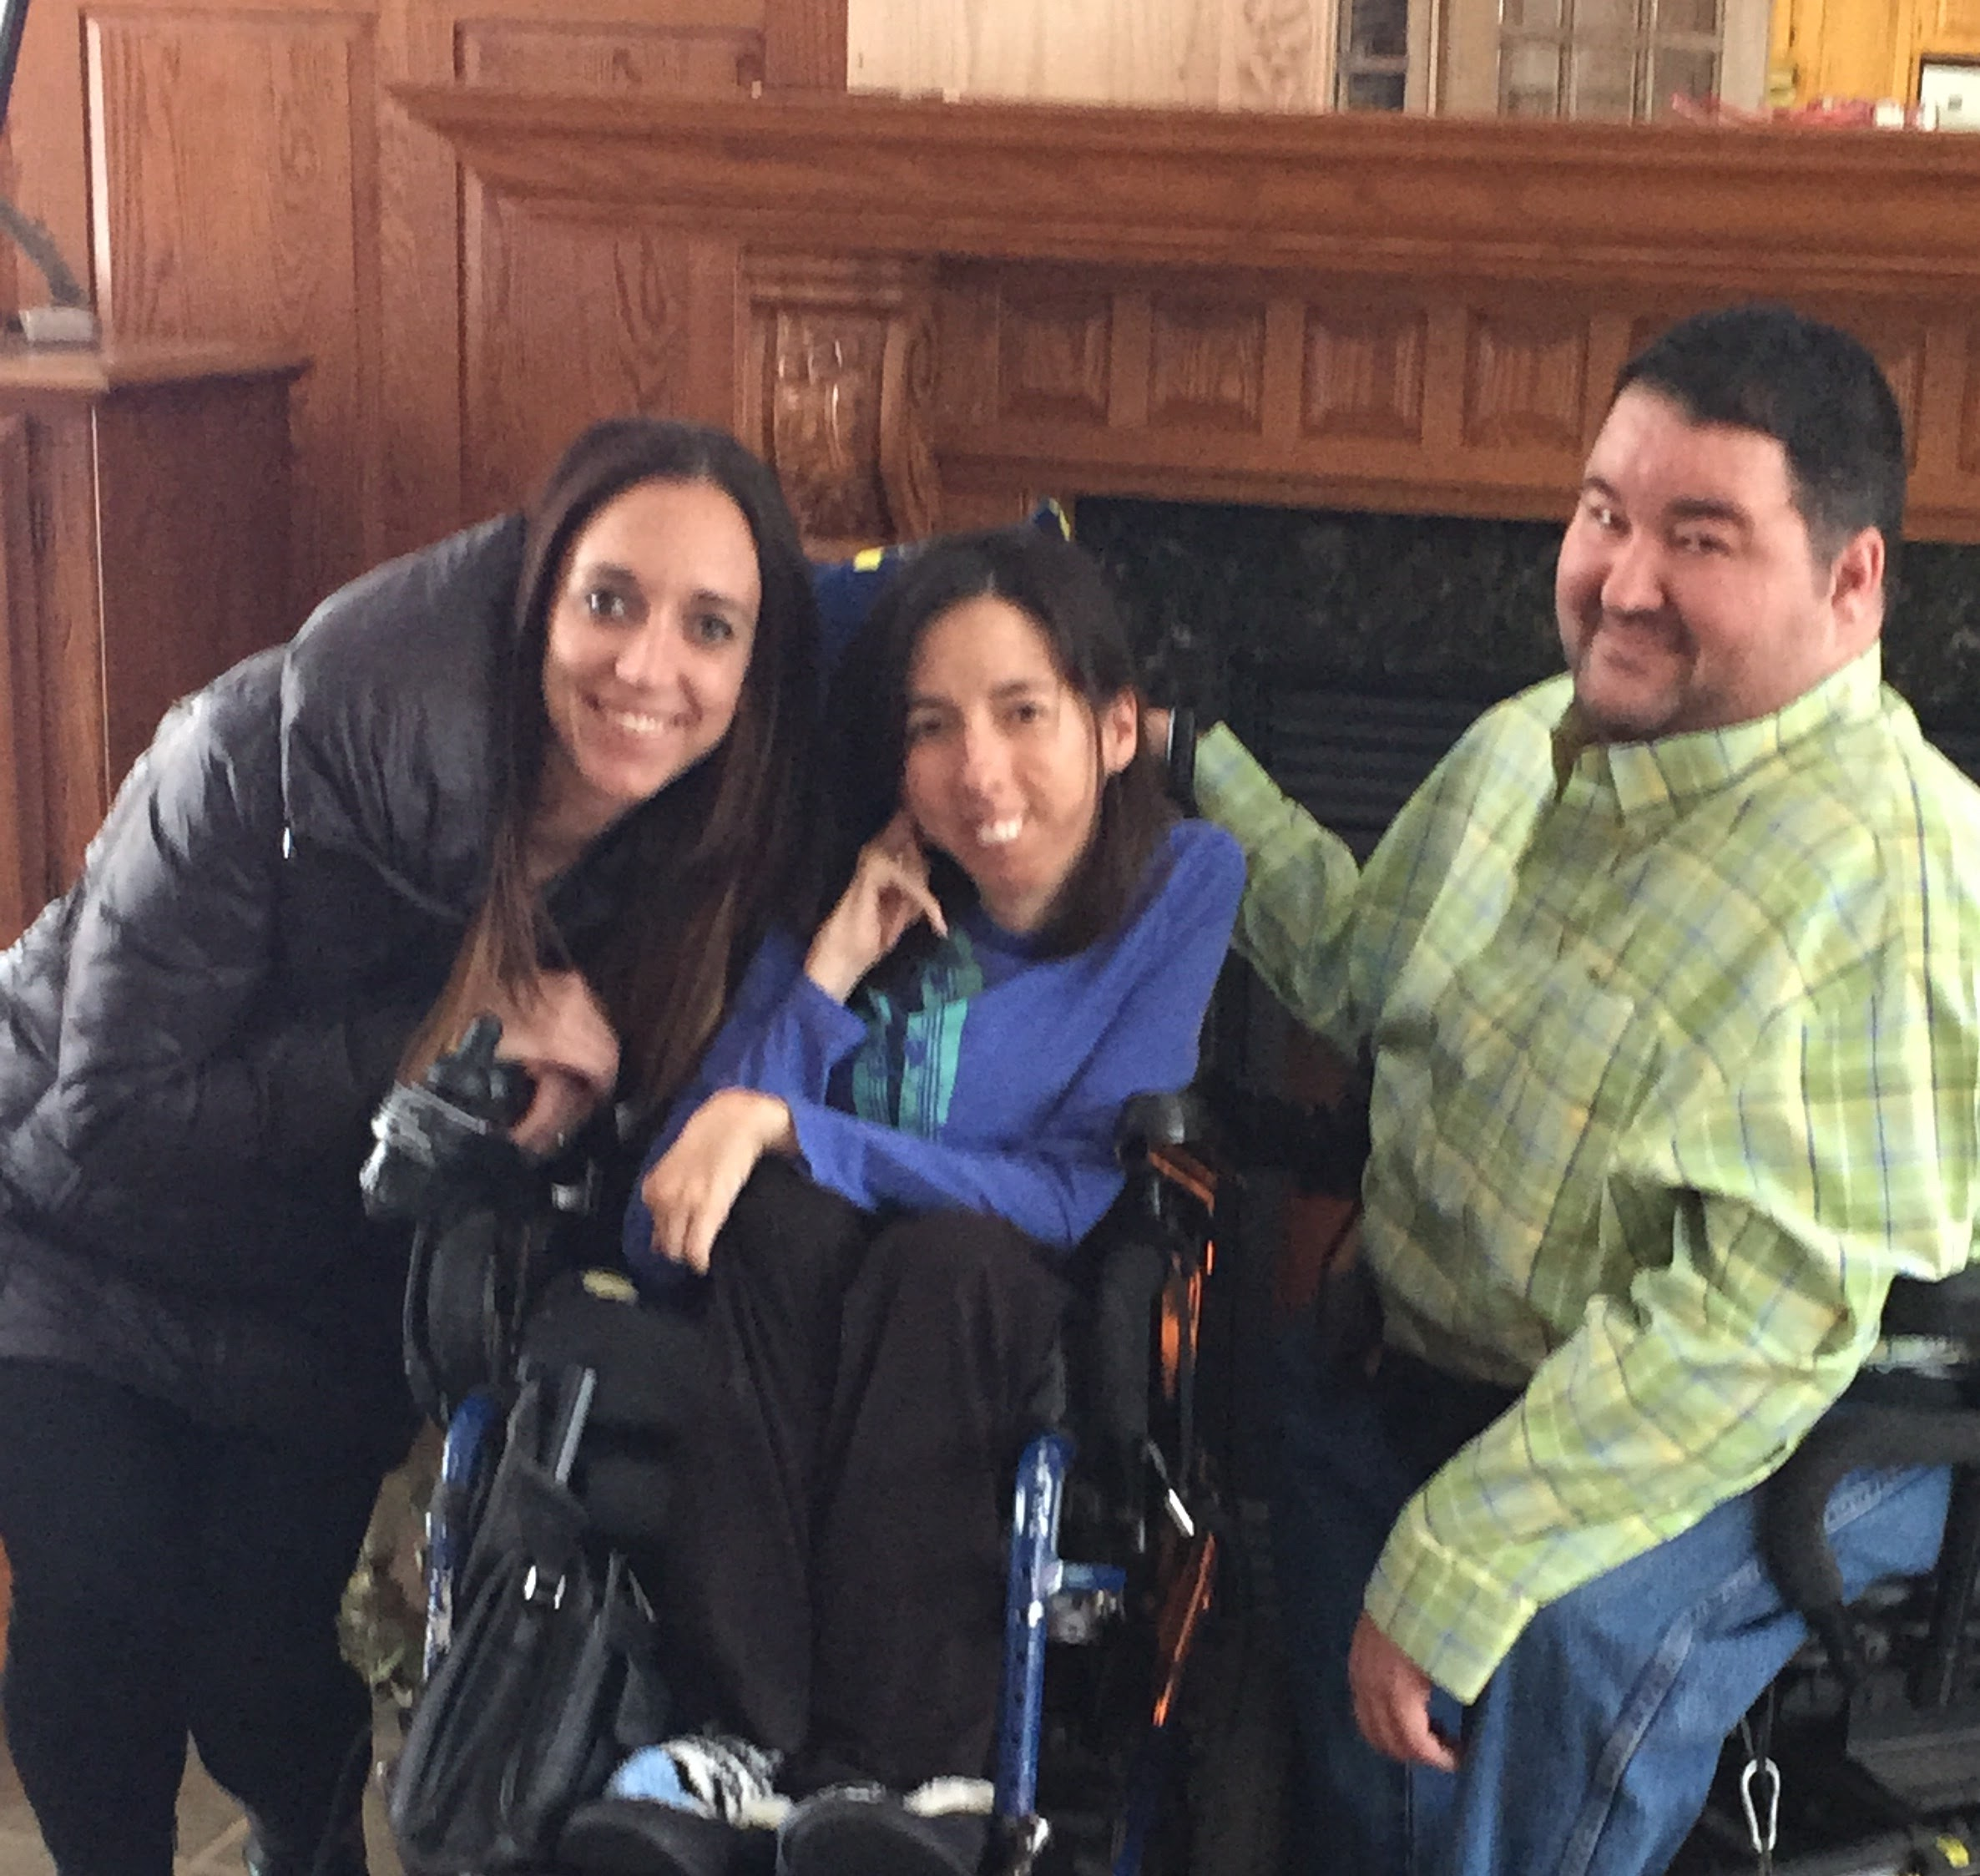 Meegan Winters founded Able Eyes, a disability focused website.